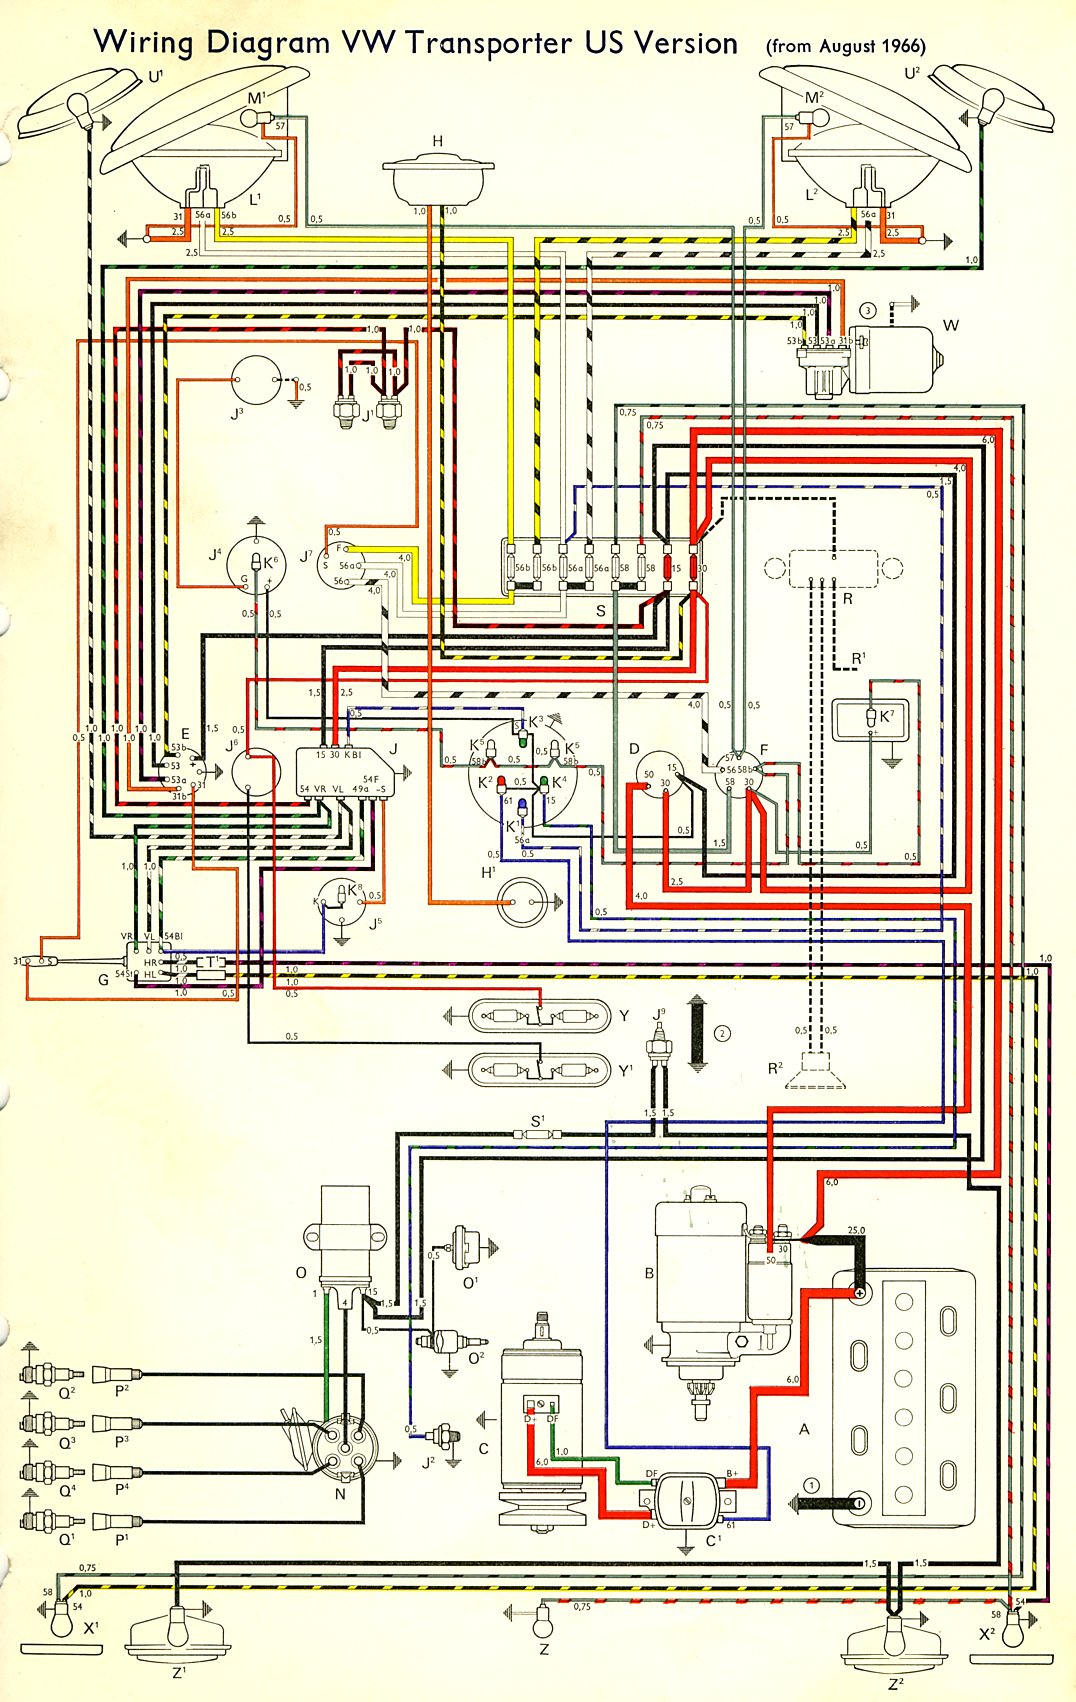 Oliver 77 Tractor Wiring Diagram Auto Electrical Montgomery Ward 33144 44